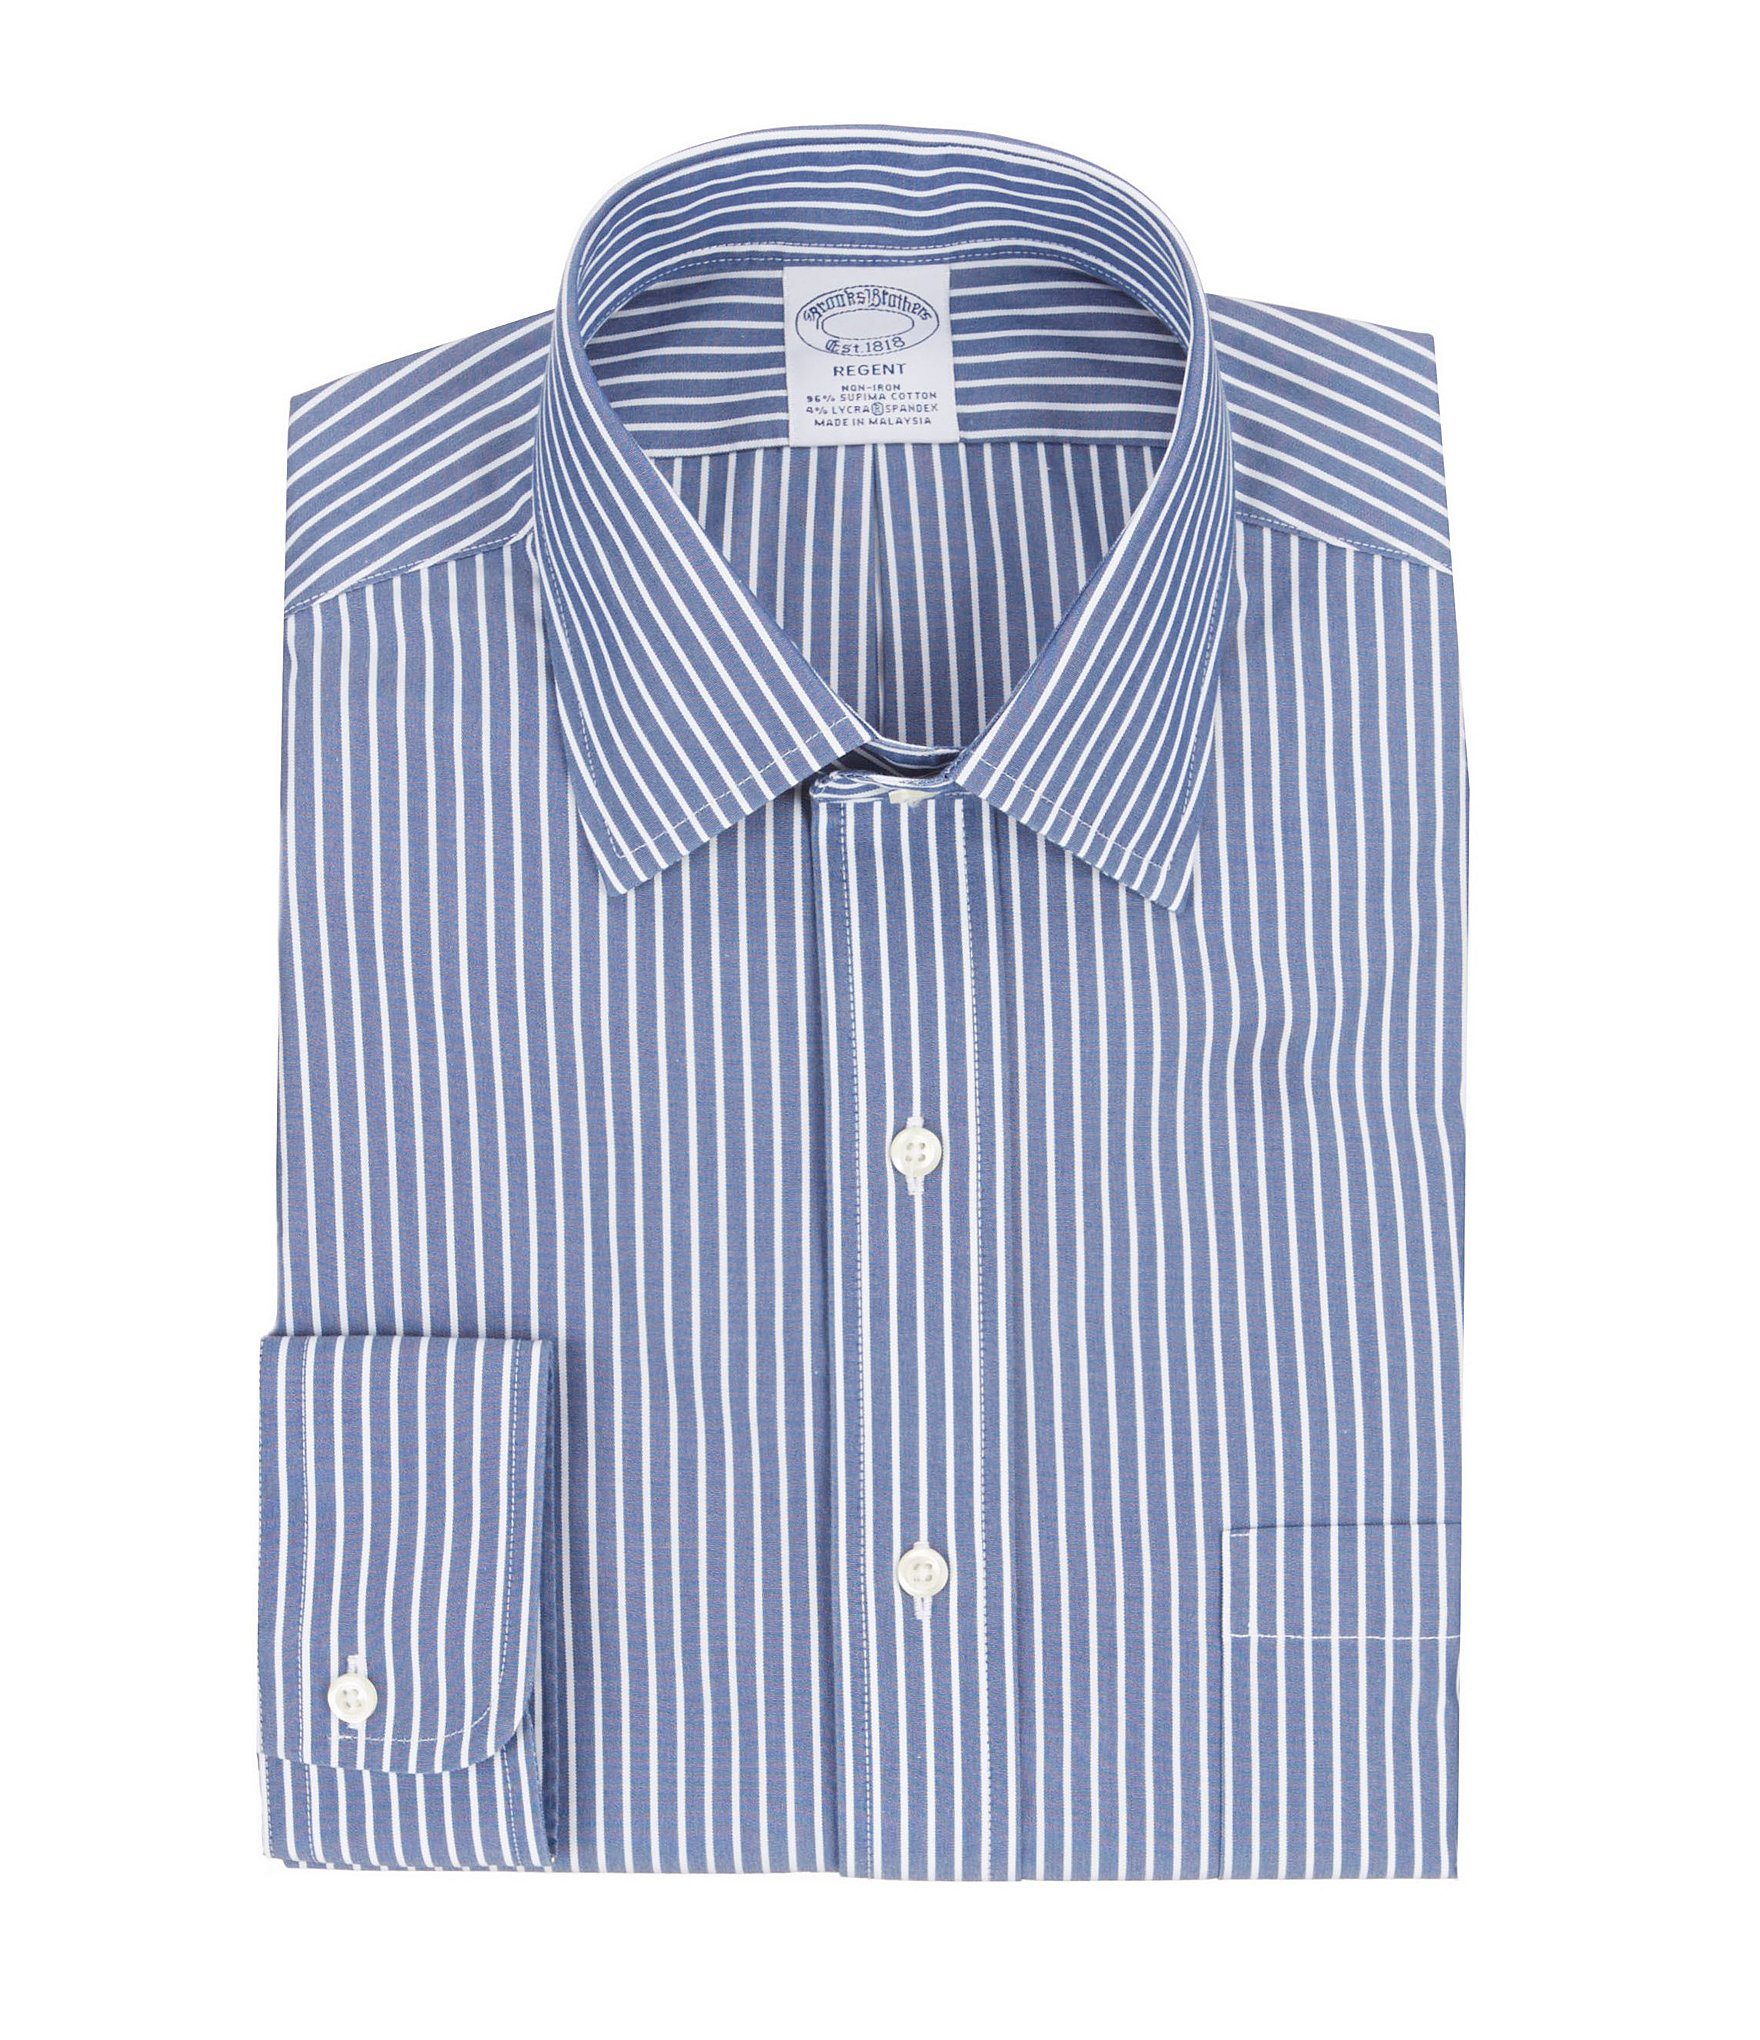 Brooks brothers non iron regent fit spread collar striped for Brooks brothers non iron shirt review